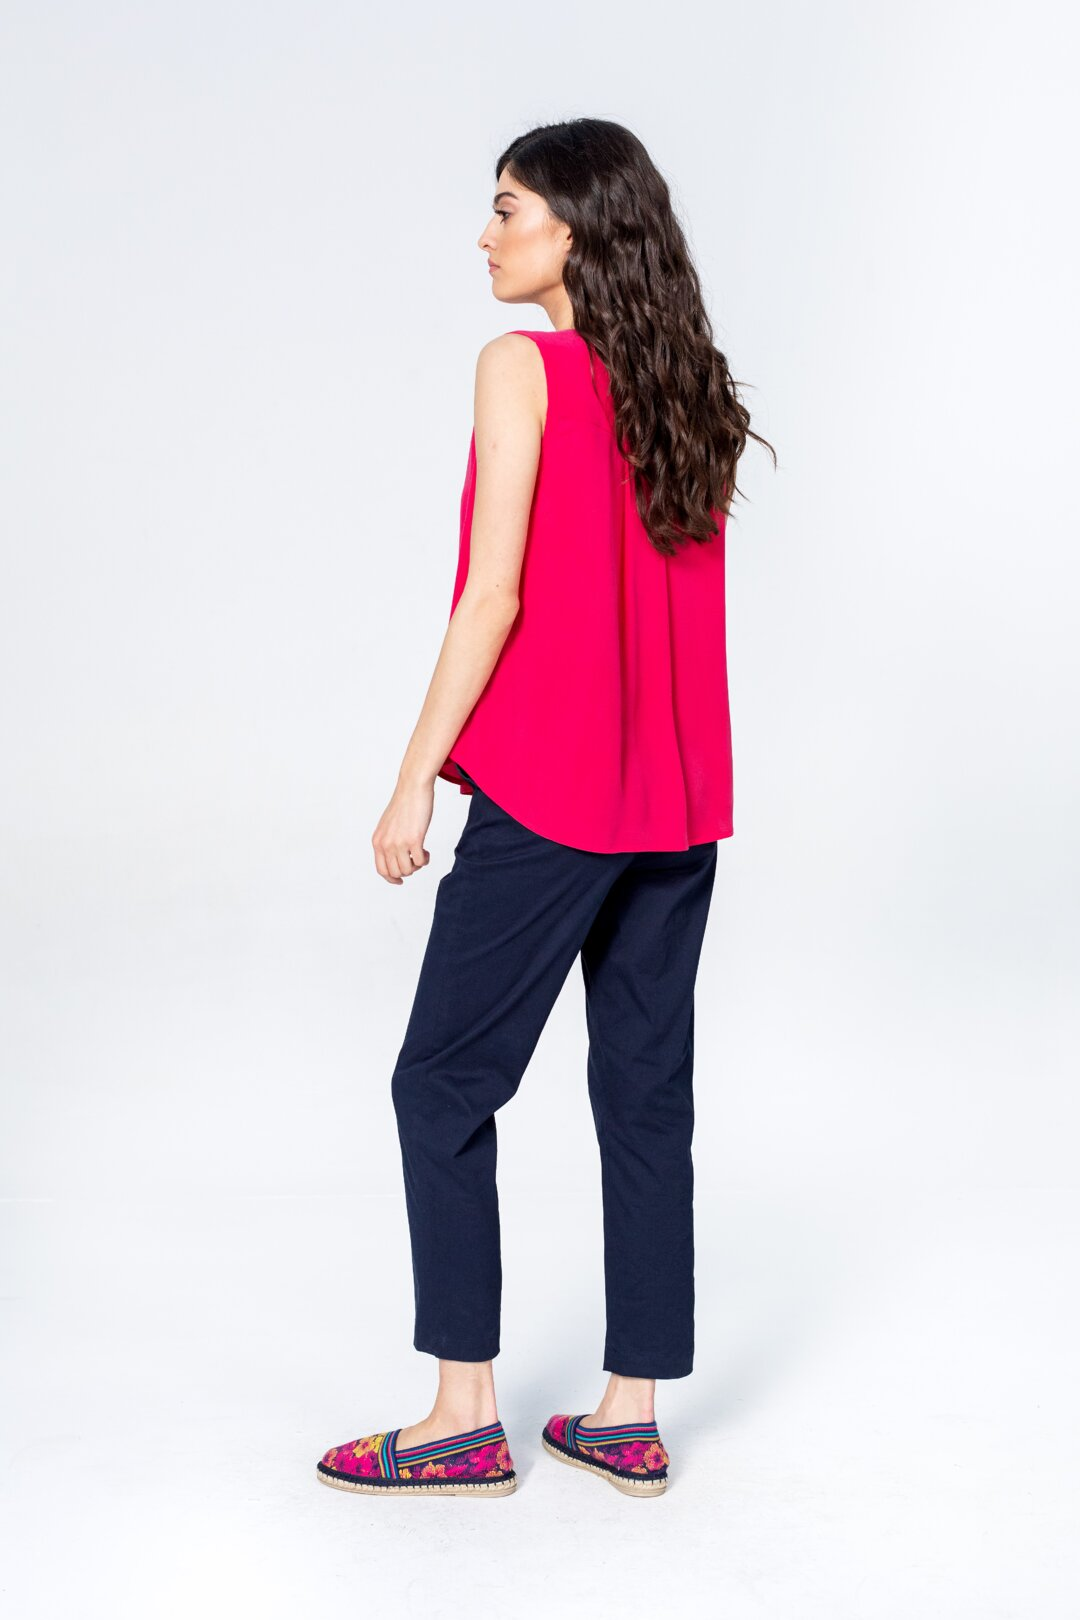 outfit-20146072d